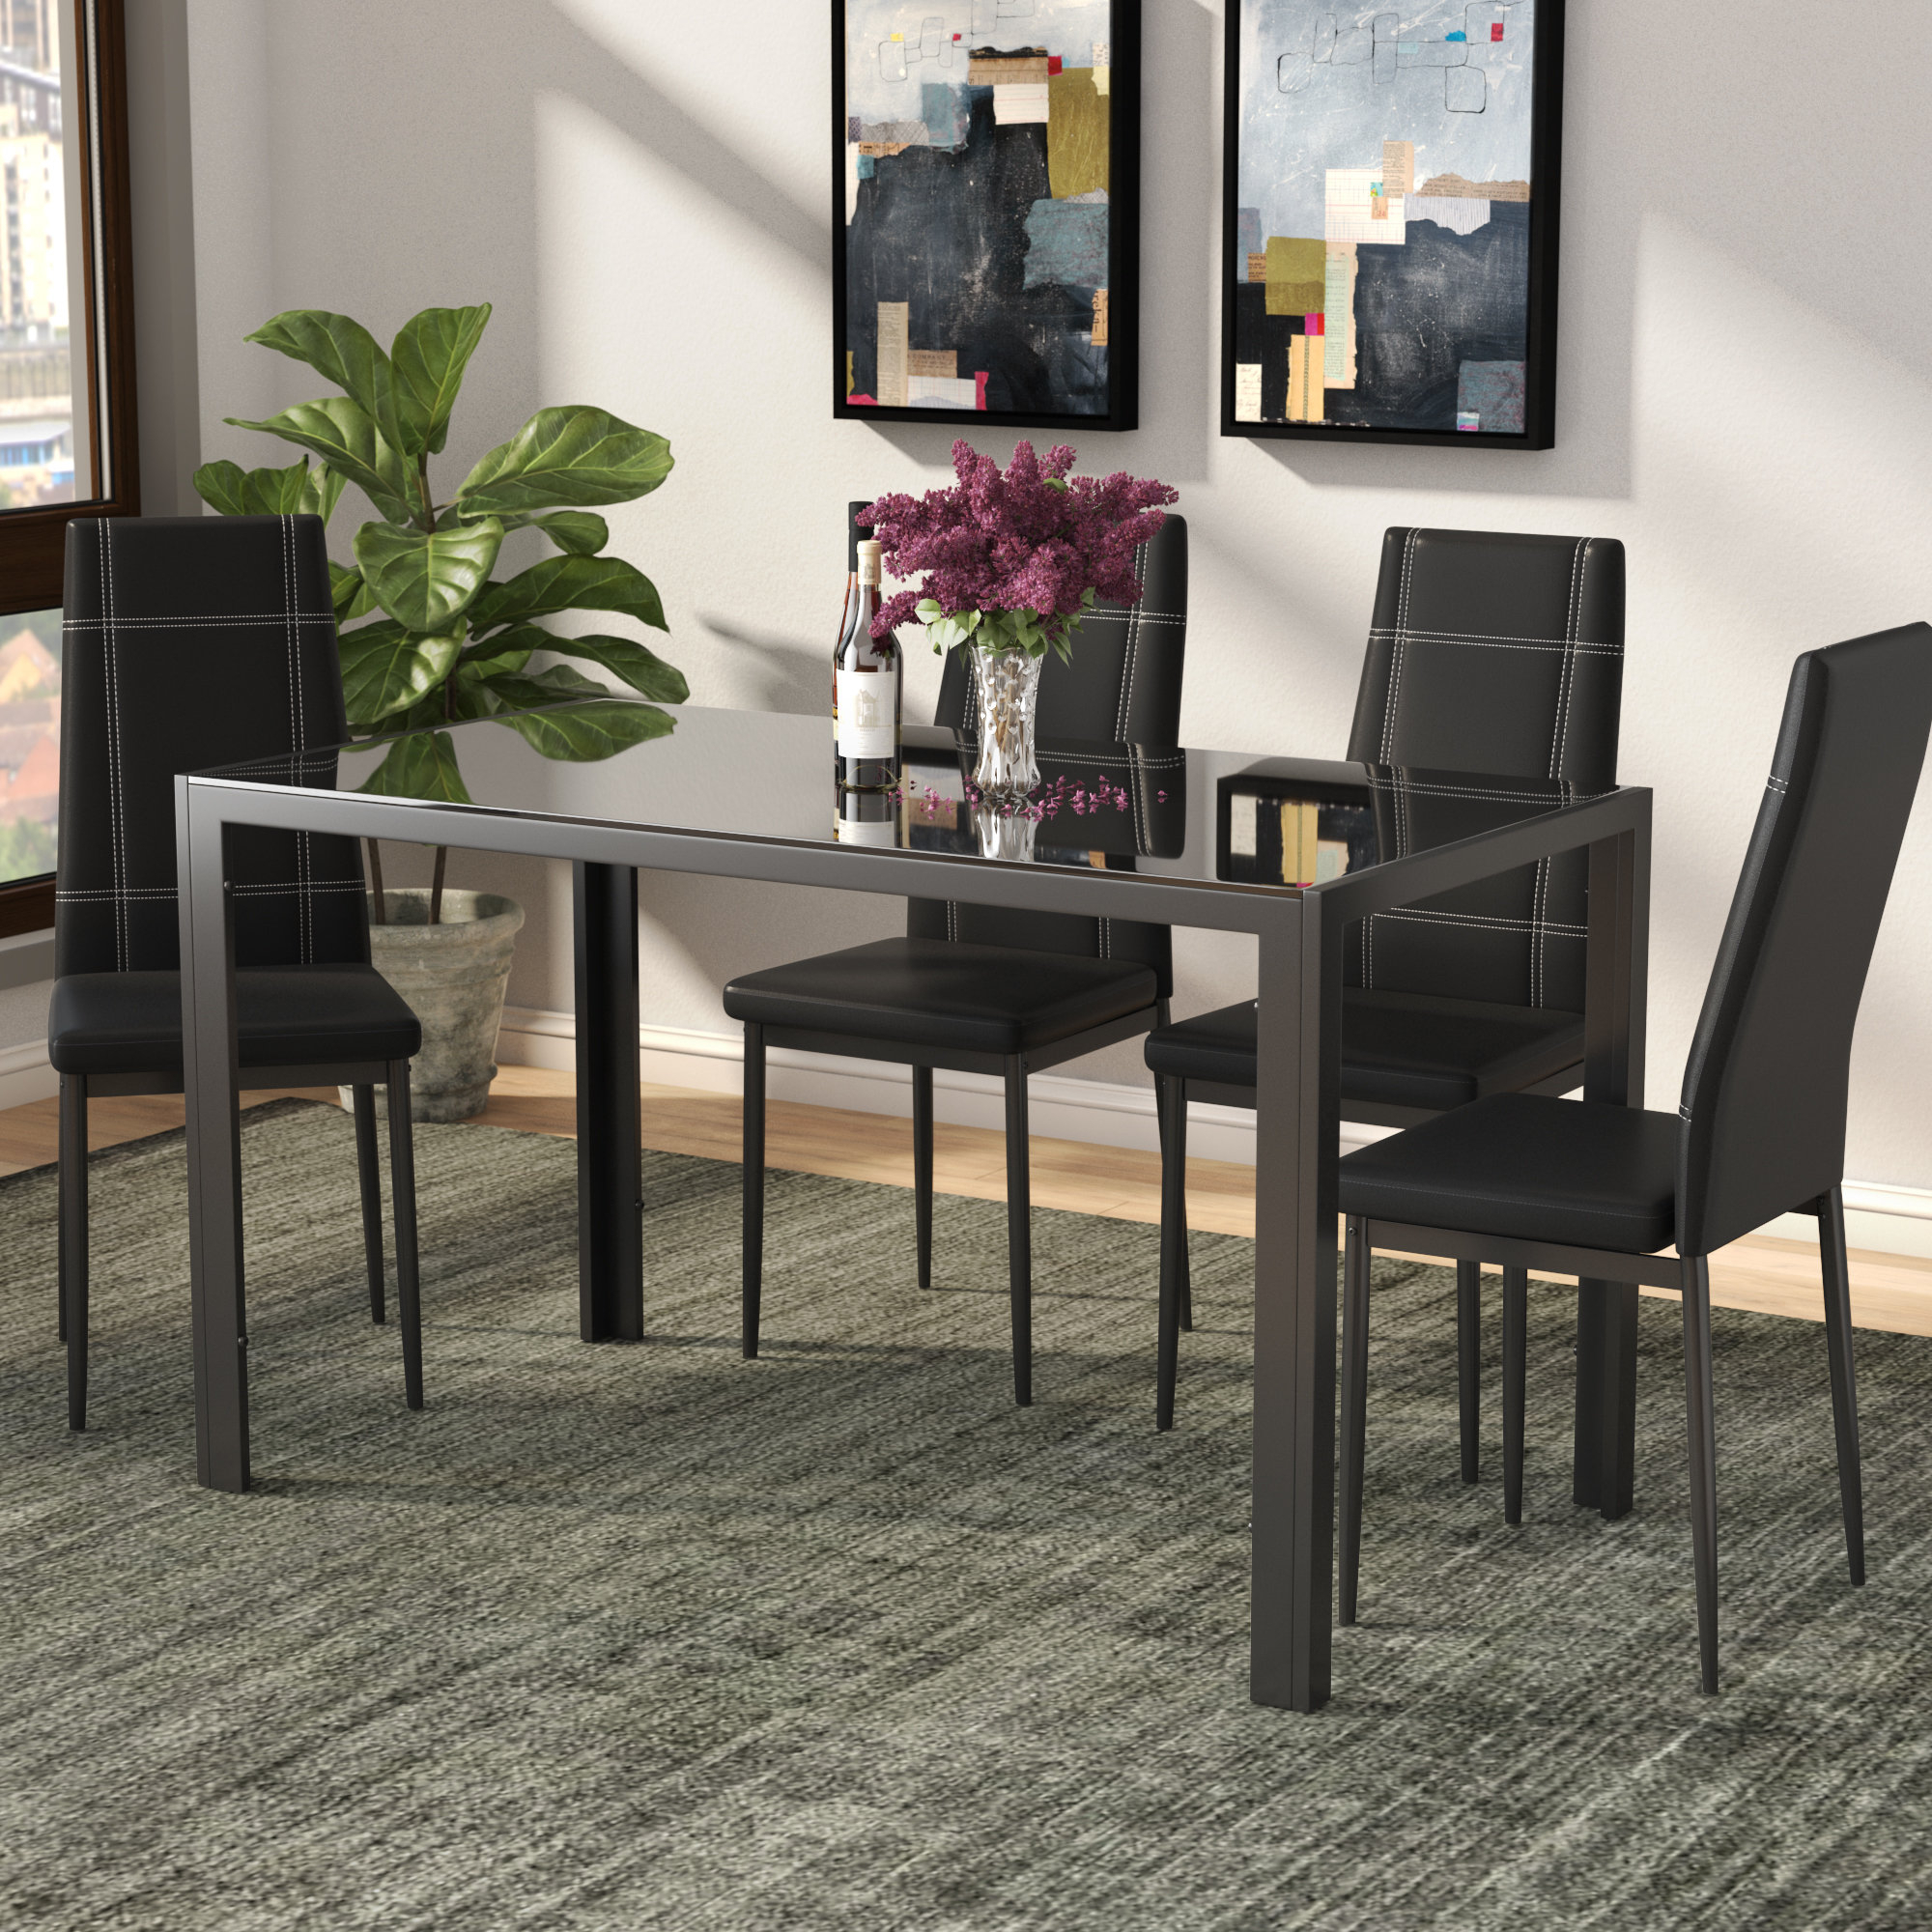 Wayfair Intended For Noyes 5 Piece Dining Sets (#18 of 20)